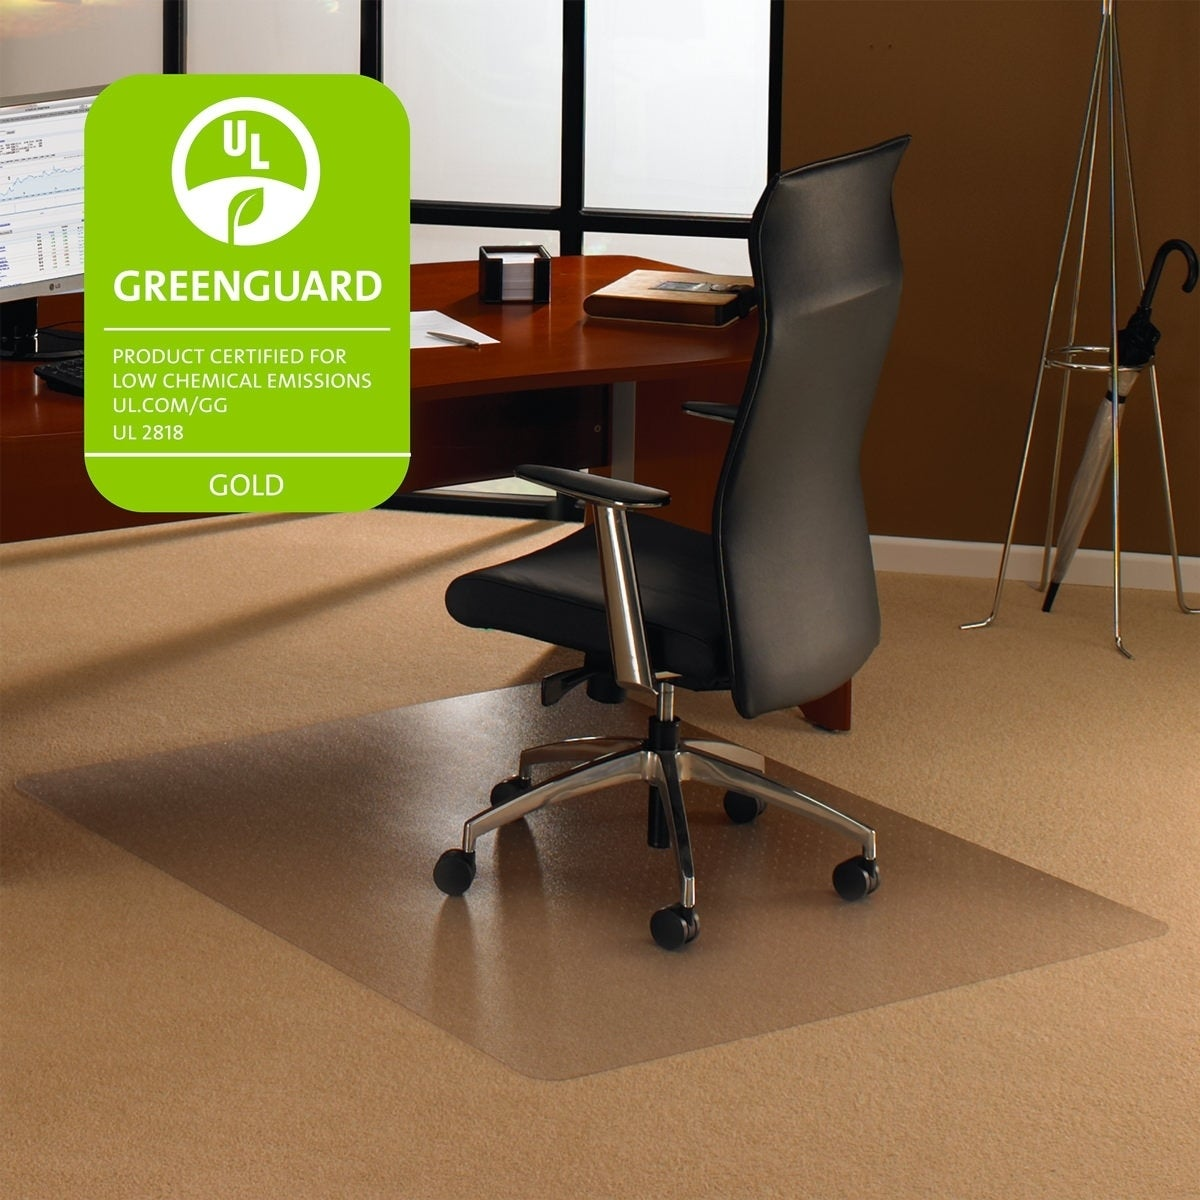 Cleartex Ultimat Rectangular Chair Mat | Polycarbonate | For Low u0026 Medium Pile Carpets (up to 1/2 ) | Size 48  x 79  & Shop Cleartex Ultimat Rectangular Chair Mat | Polycarbonate | For ...